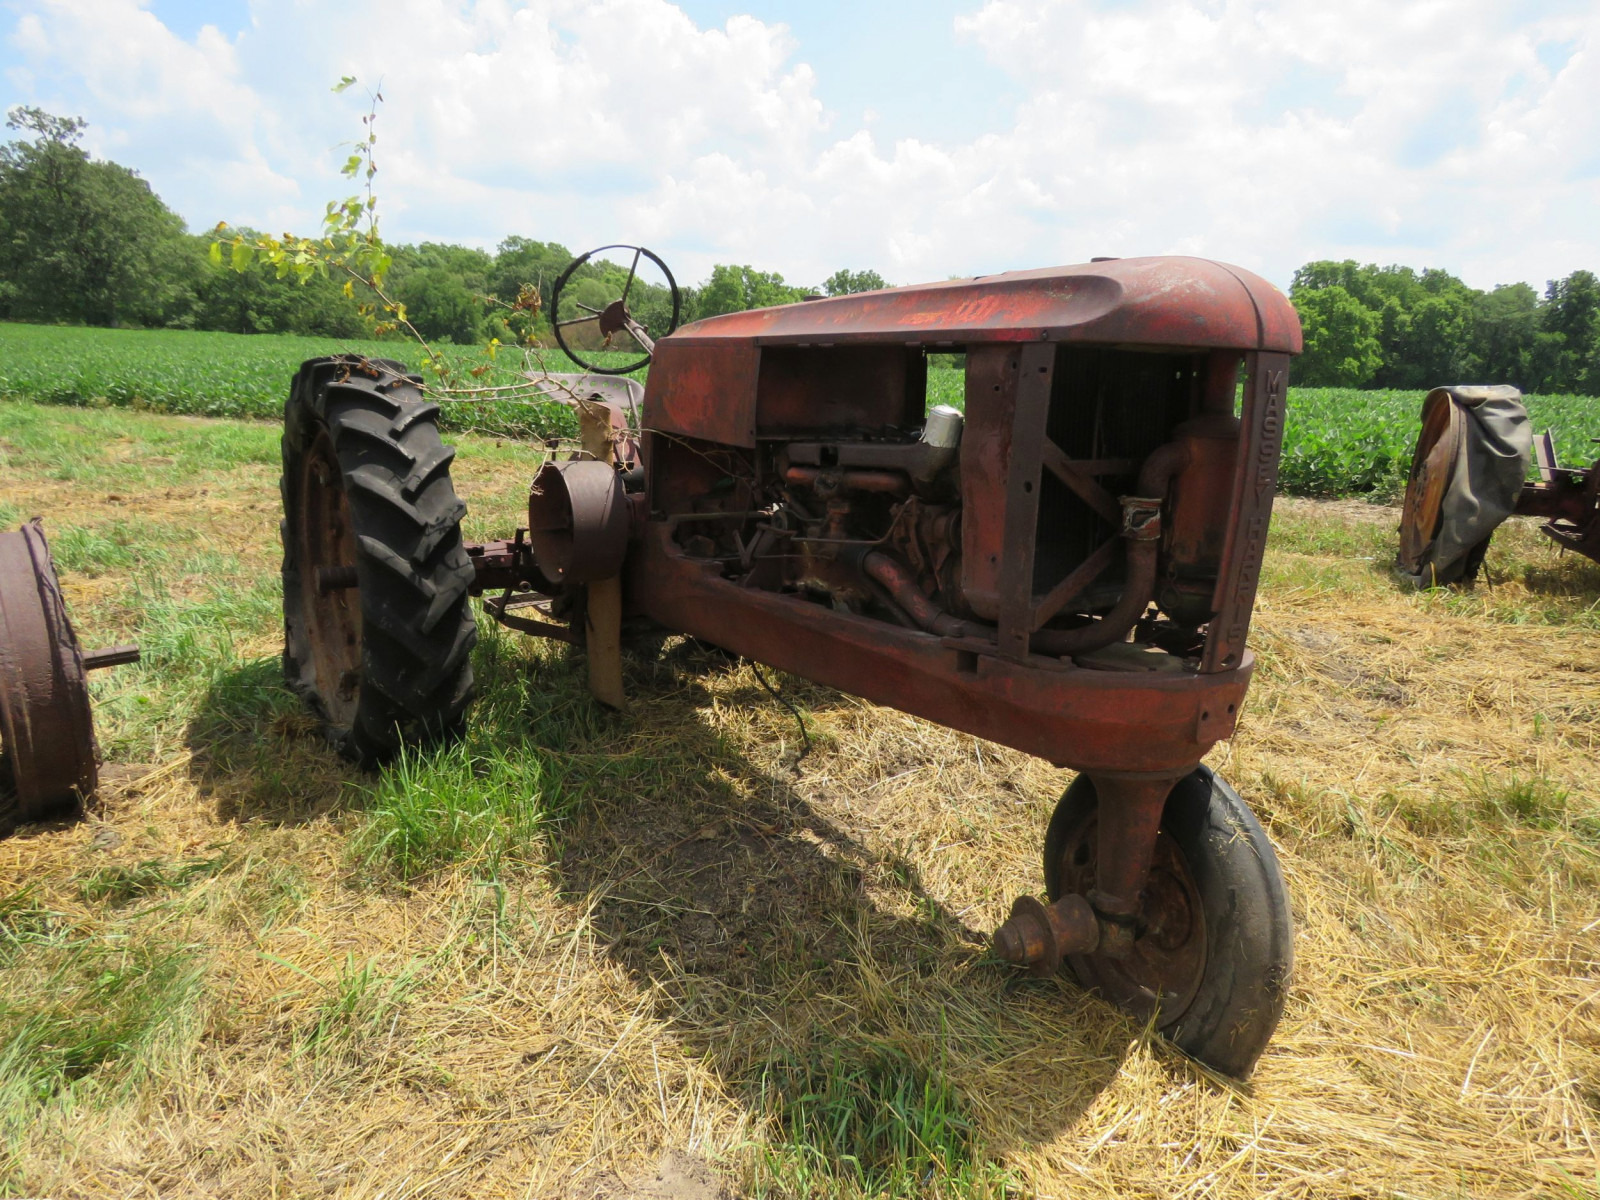 Massey Harris Tractor for Project or Parts - Image 1